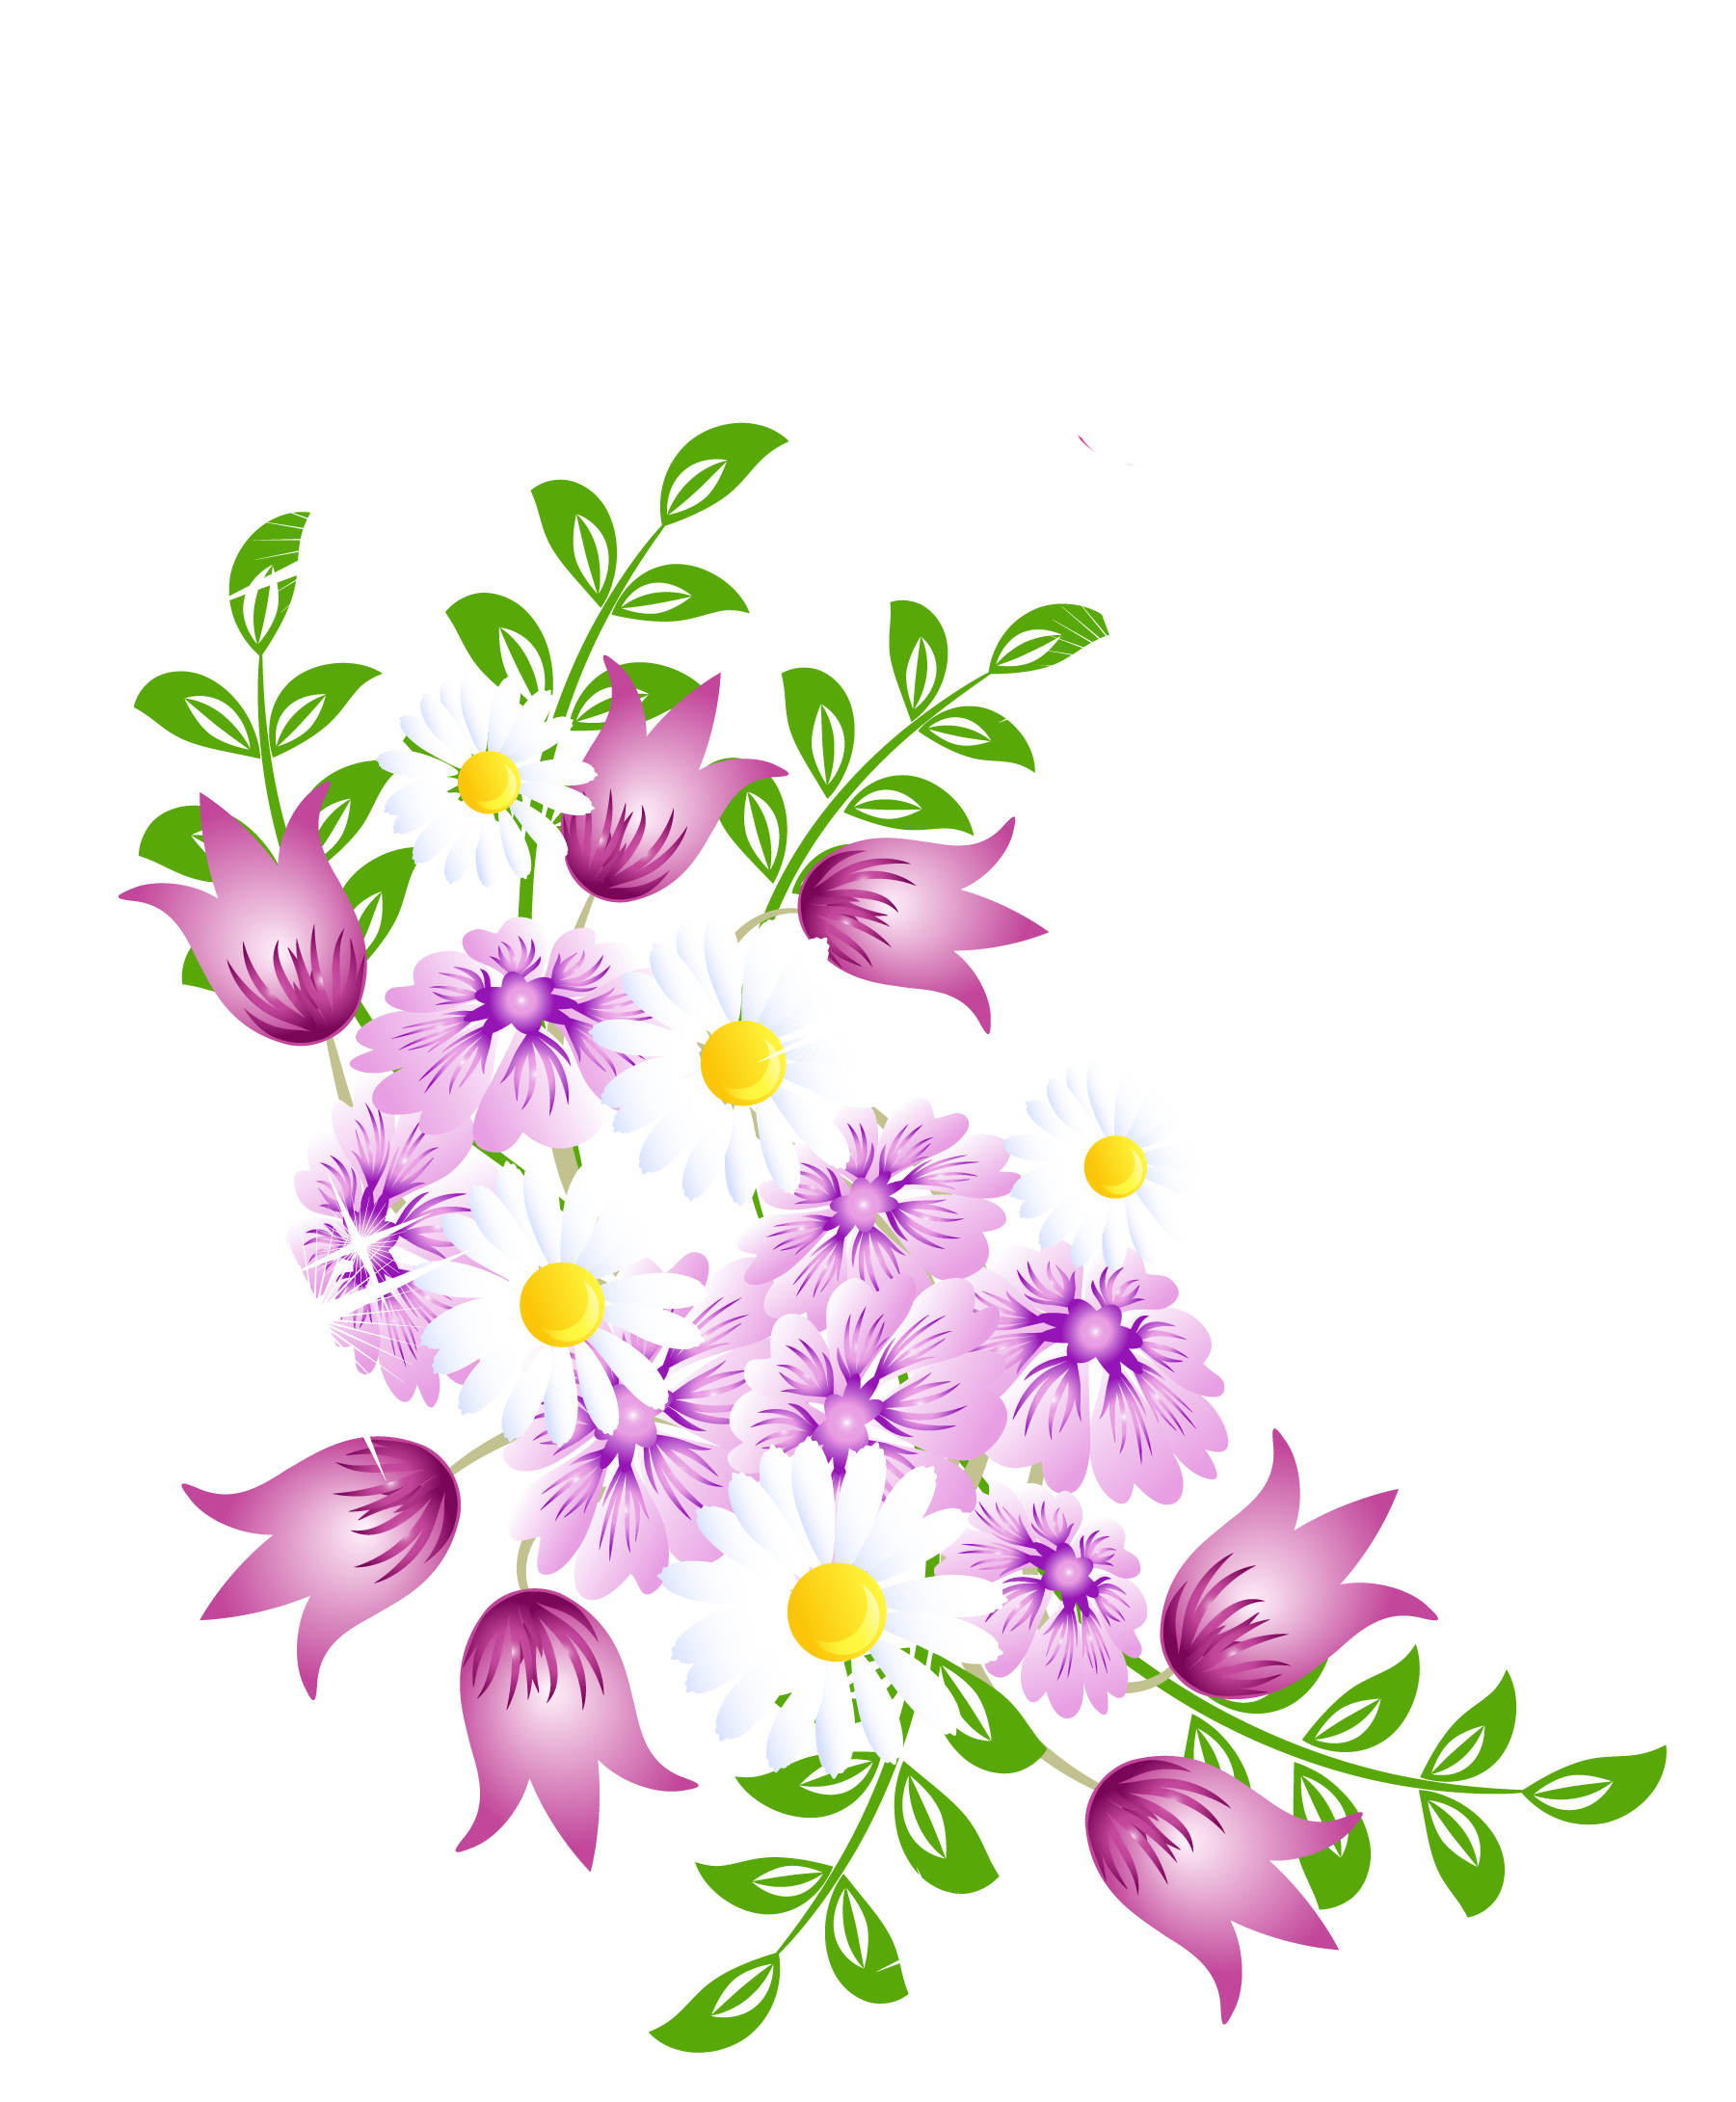 clipart download Flowers decor png picture. Wheelbarrow clipart spring flower